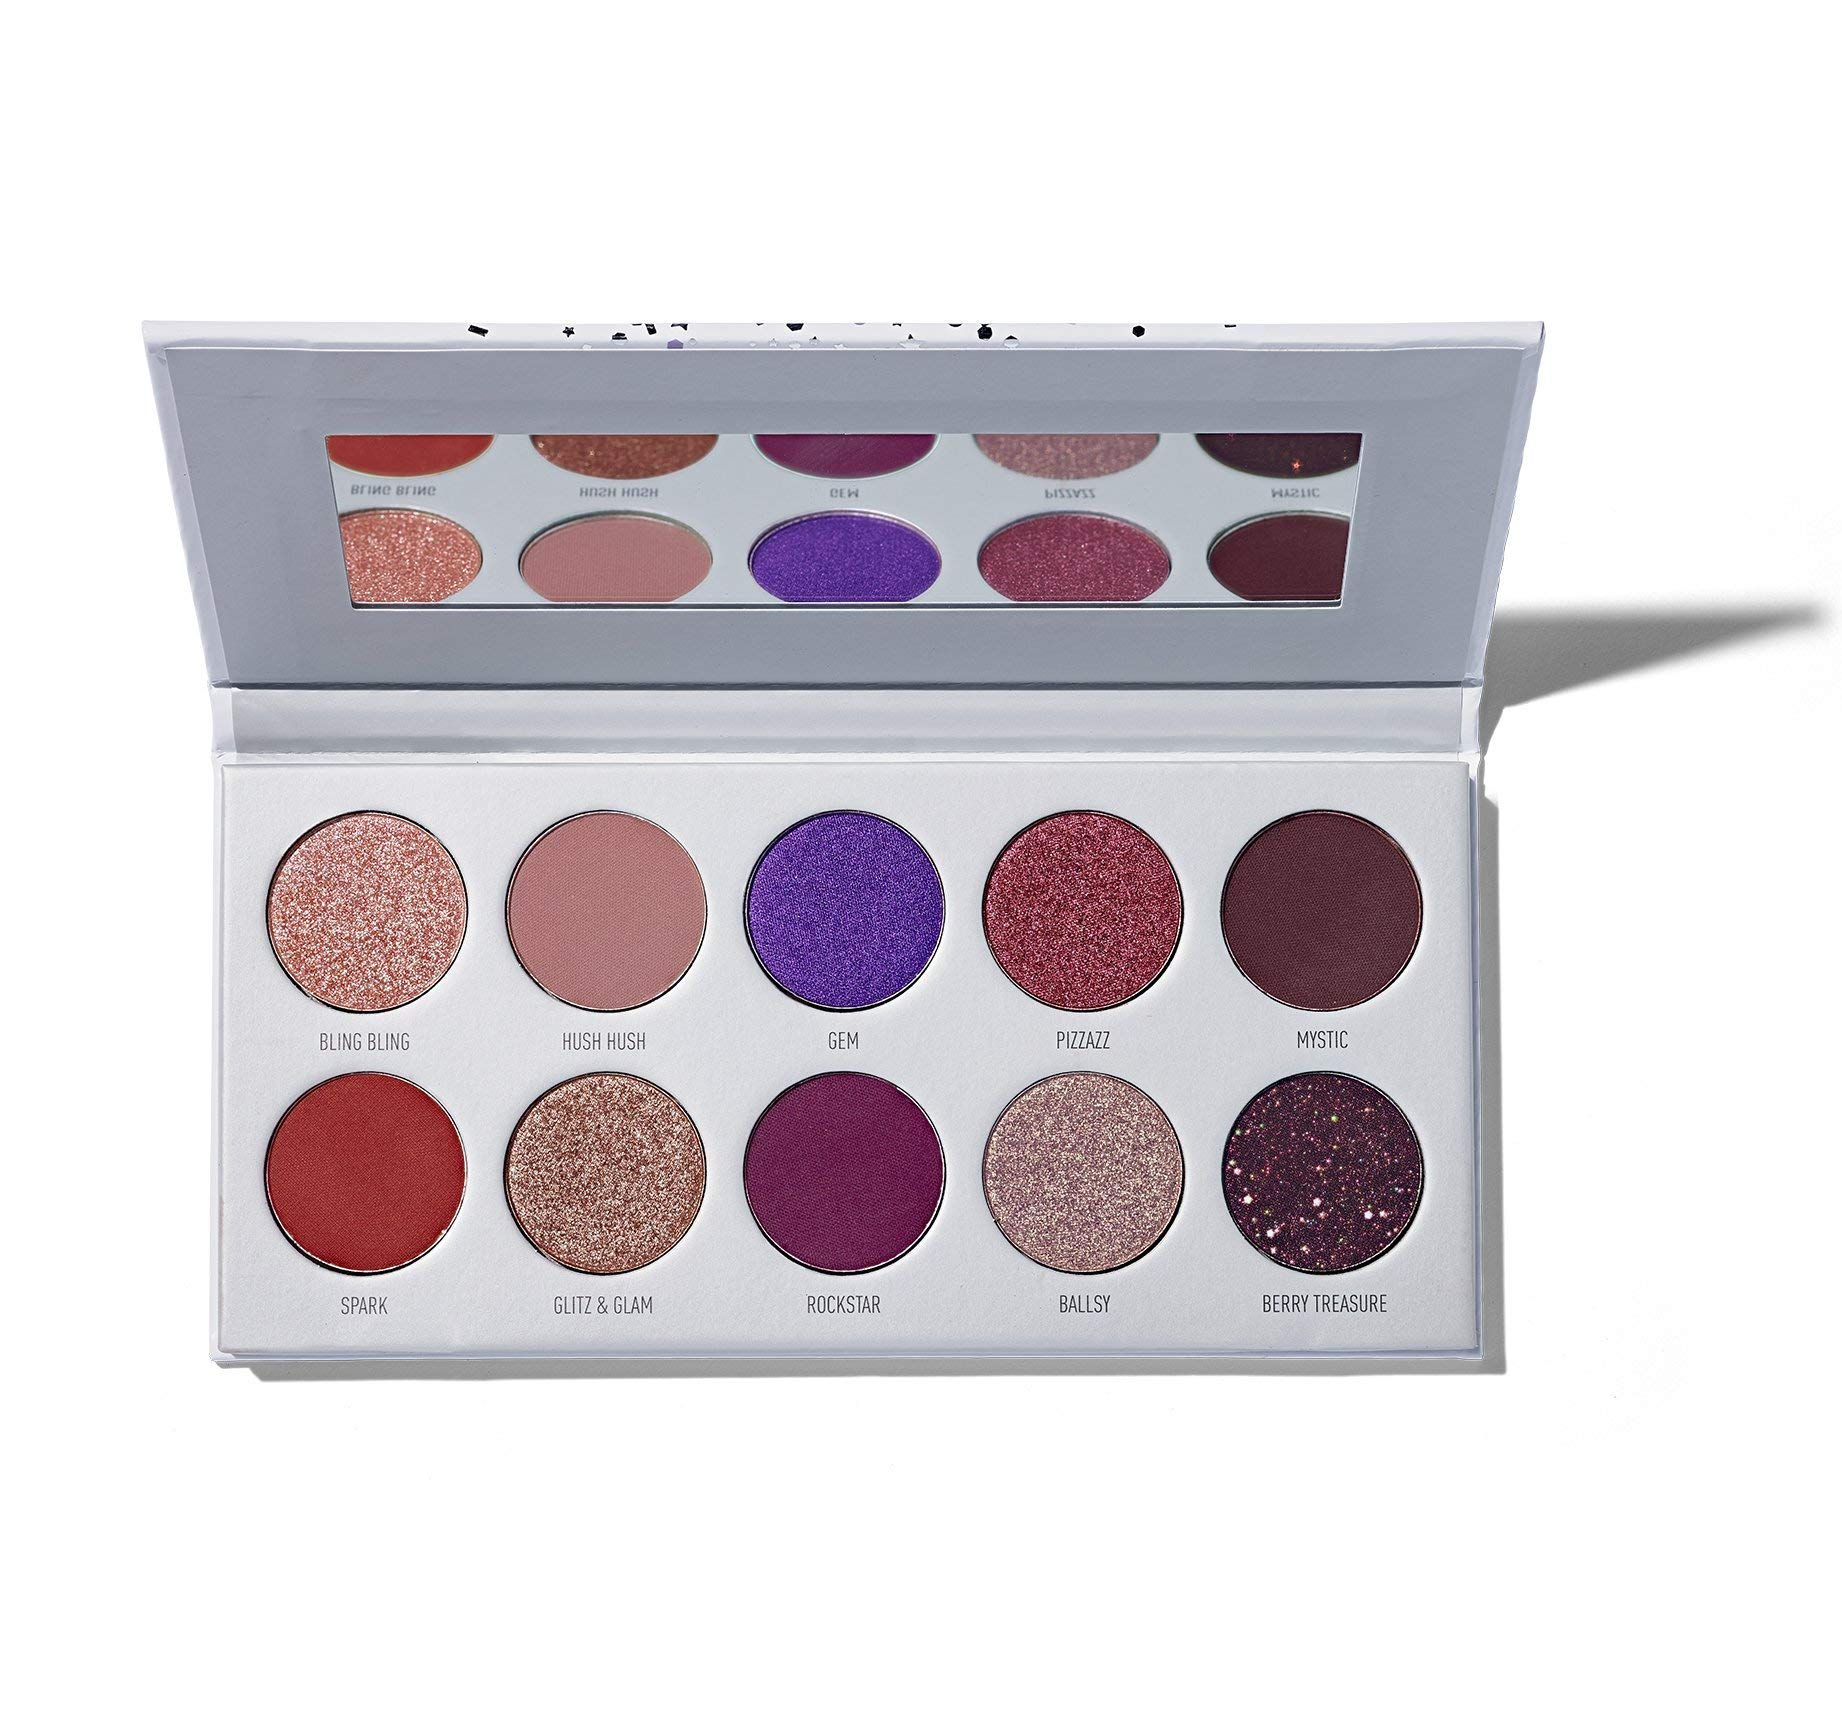 Morphe X Jaclyn Hill The Vault Bling Boss Eyeshadow Palette Buy Online In Mauritius At Desertcart Productid 77211271 Magsafe uses a ring of magnets in the ‌iphone 12‌ models to connect to accessories that also have magnets built inside. desertcart